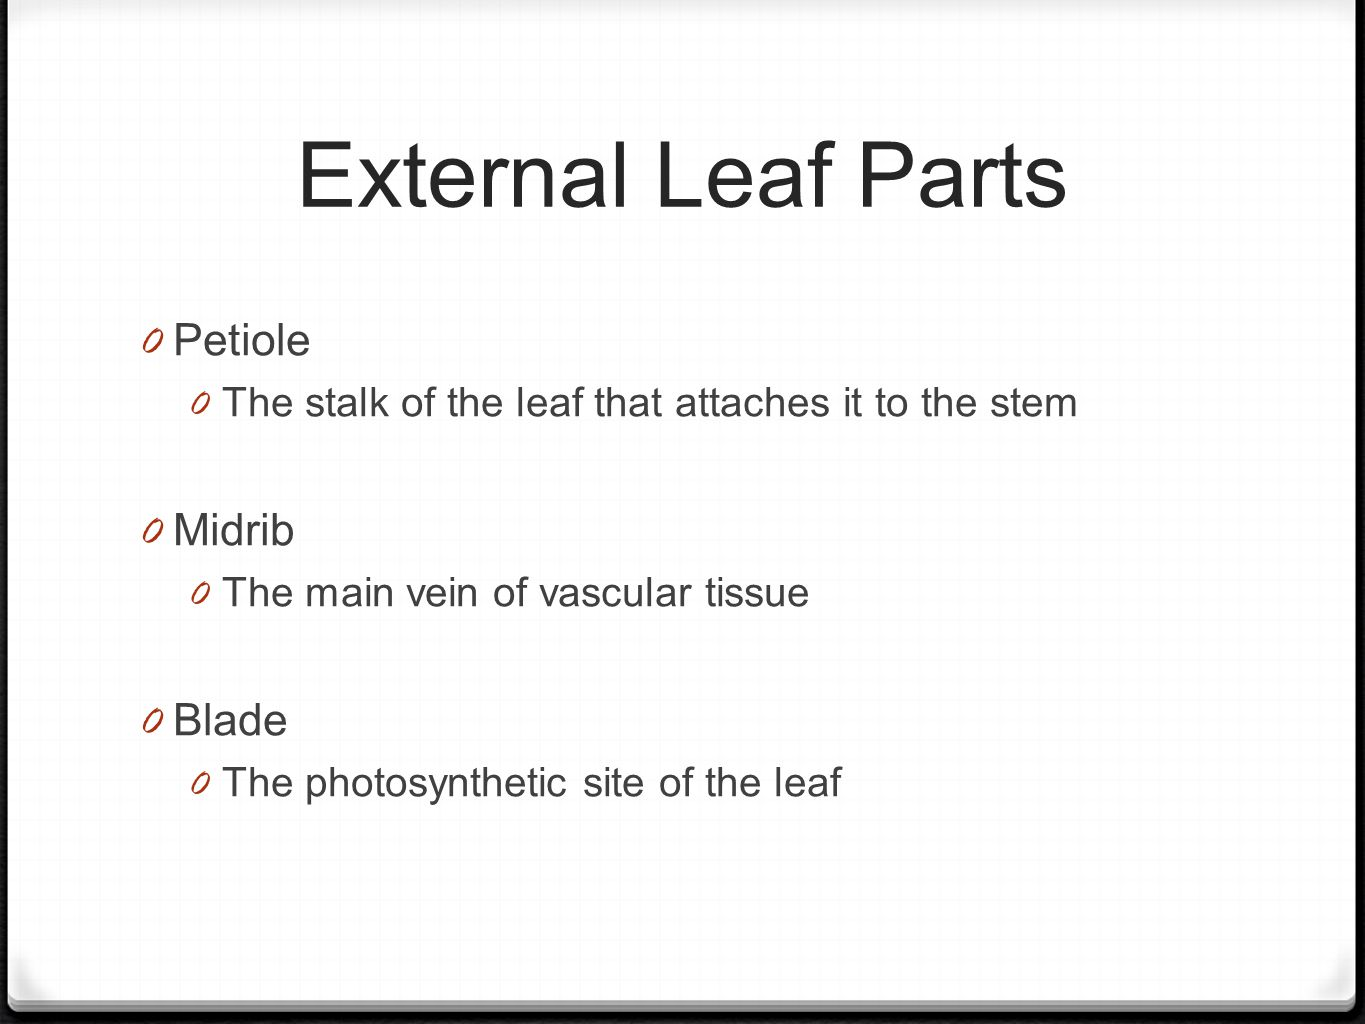 External Leaf Parts 0 Petiole 0 The stalk of the leaf that attaches it to the stem 0 Midrib 0 The main vein of vascular tissue 0 Blade 0 The photosynthetic site of the leaf